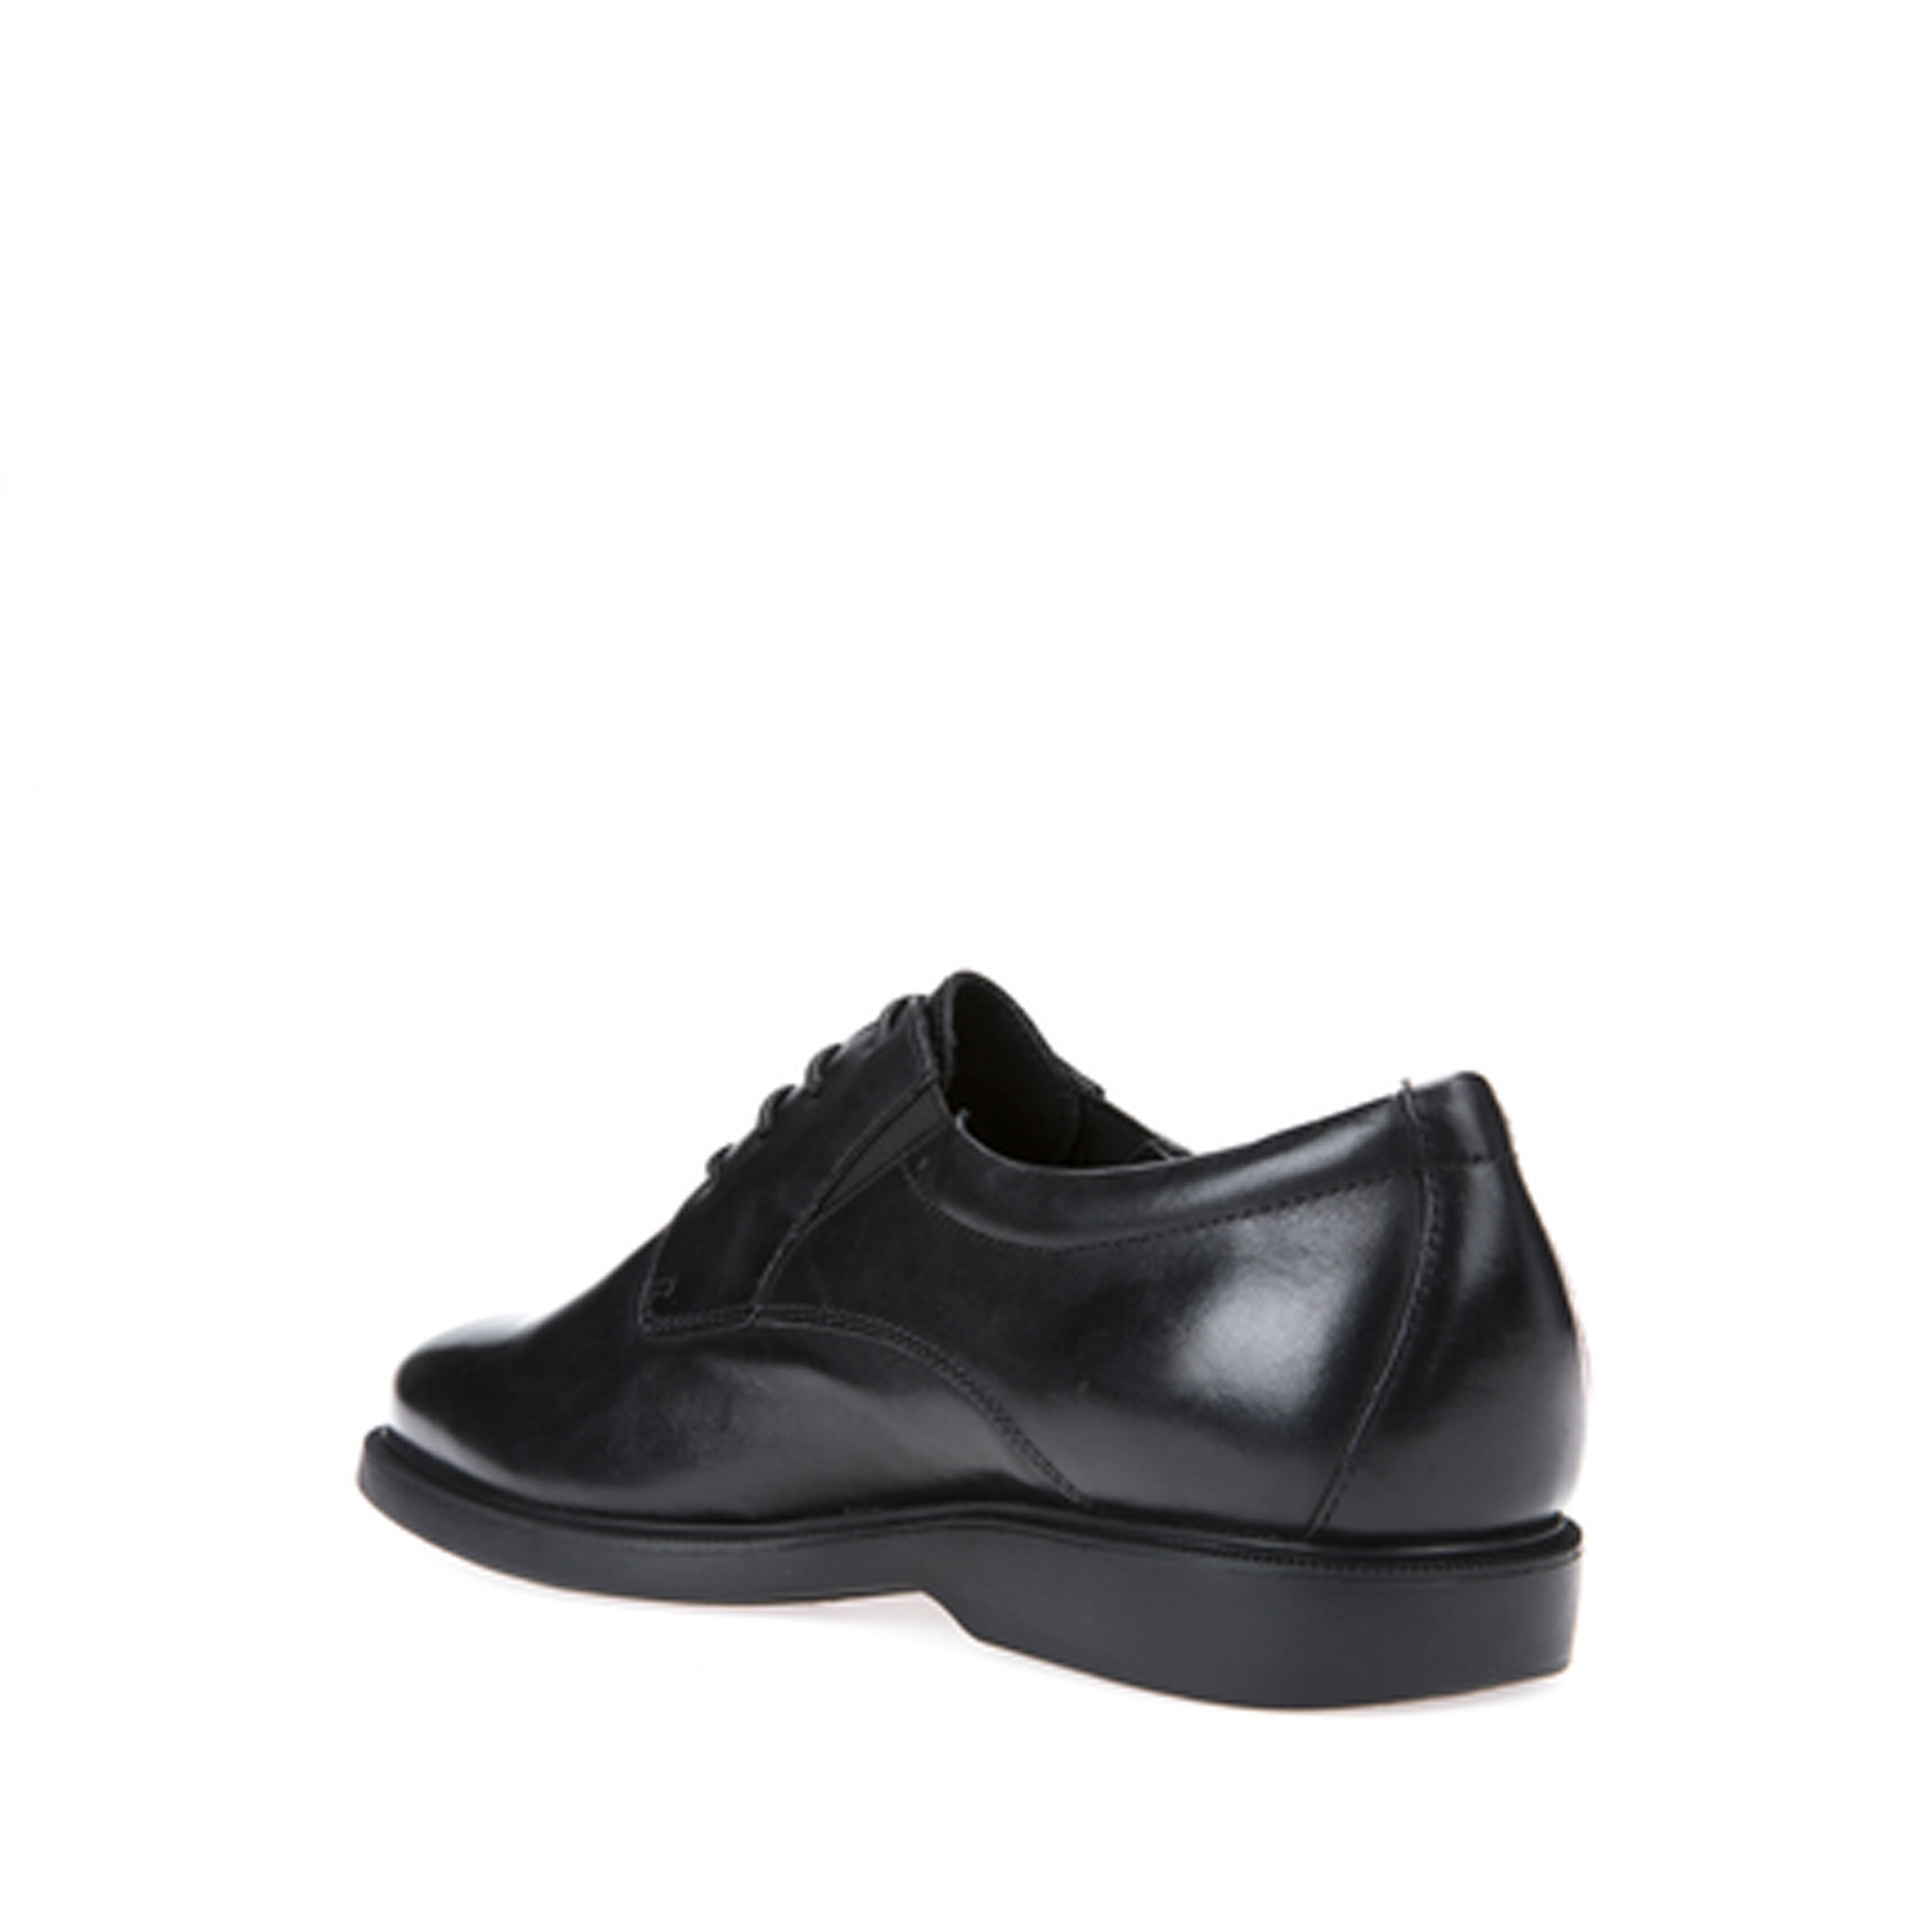 Geox Men's Brayden Oxford in Black - image 3 de 4